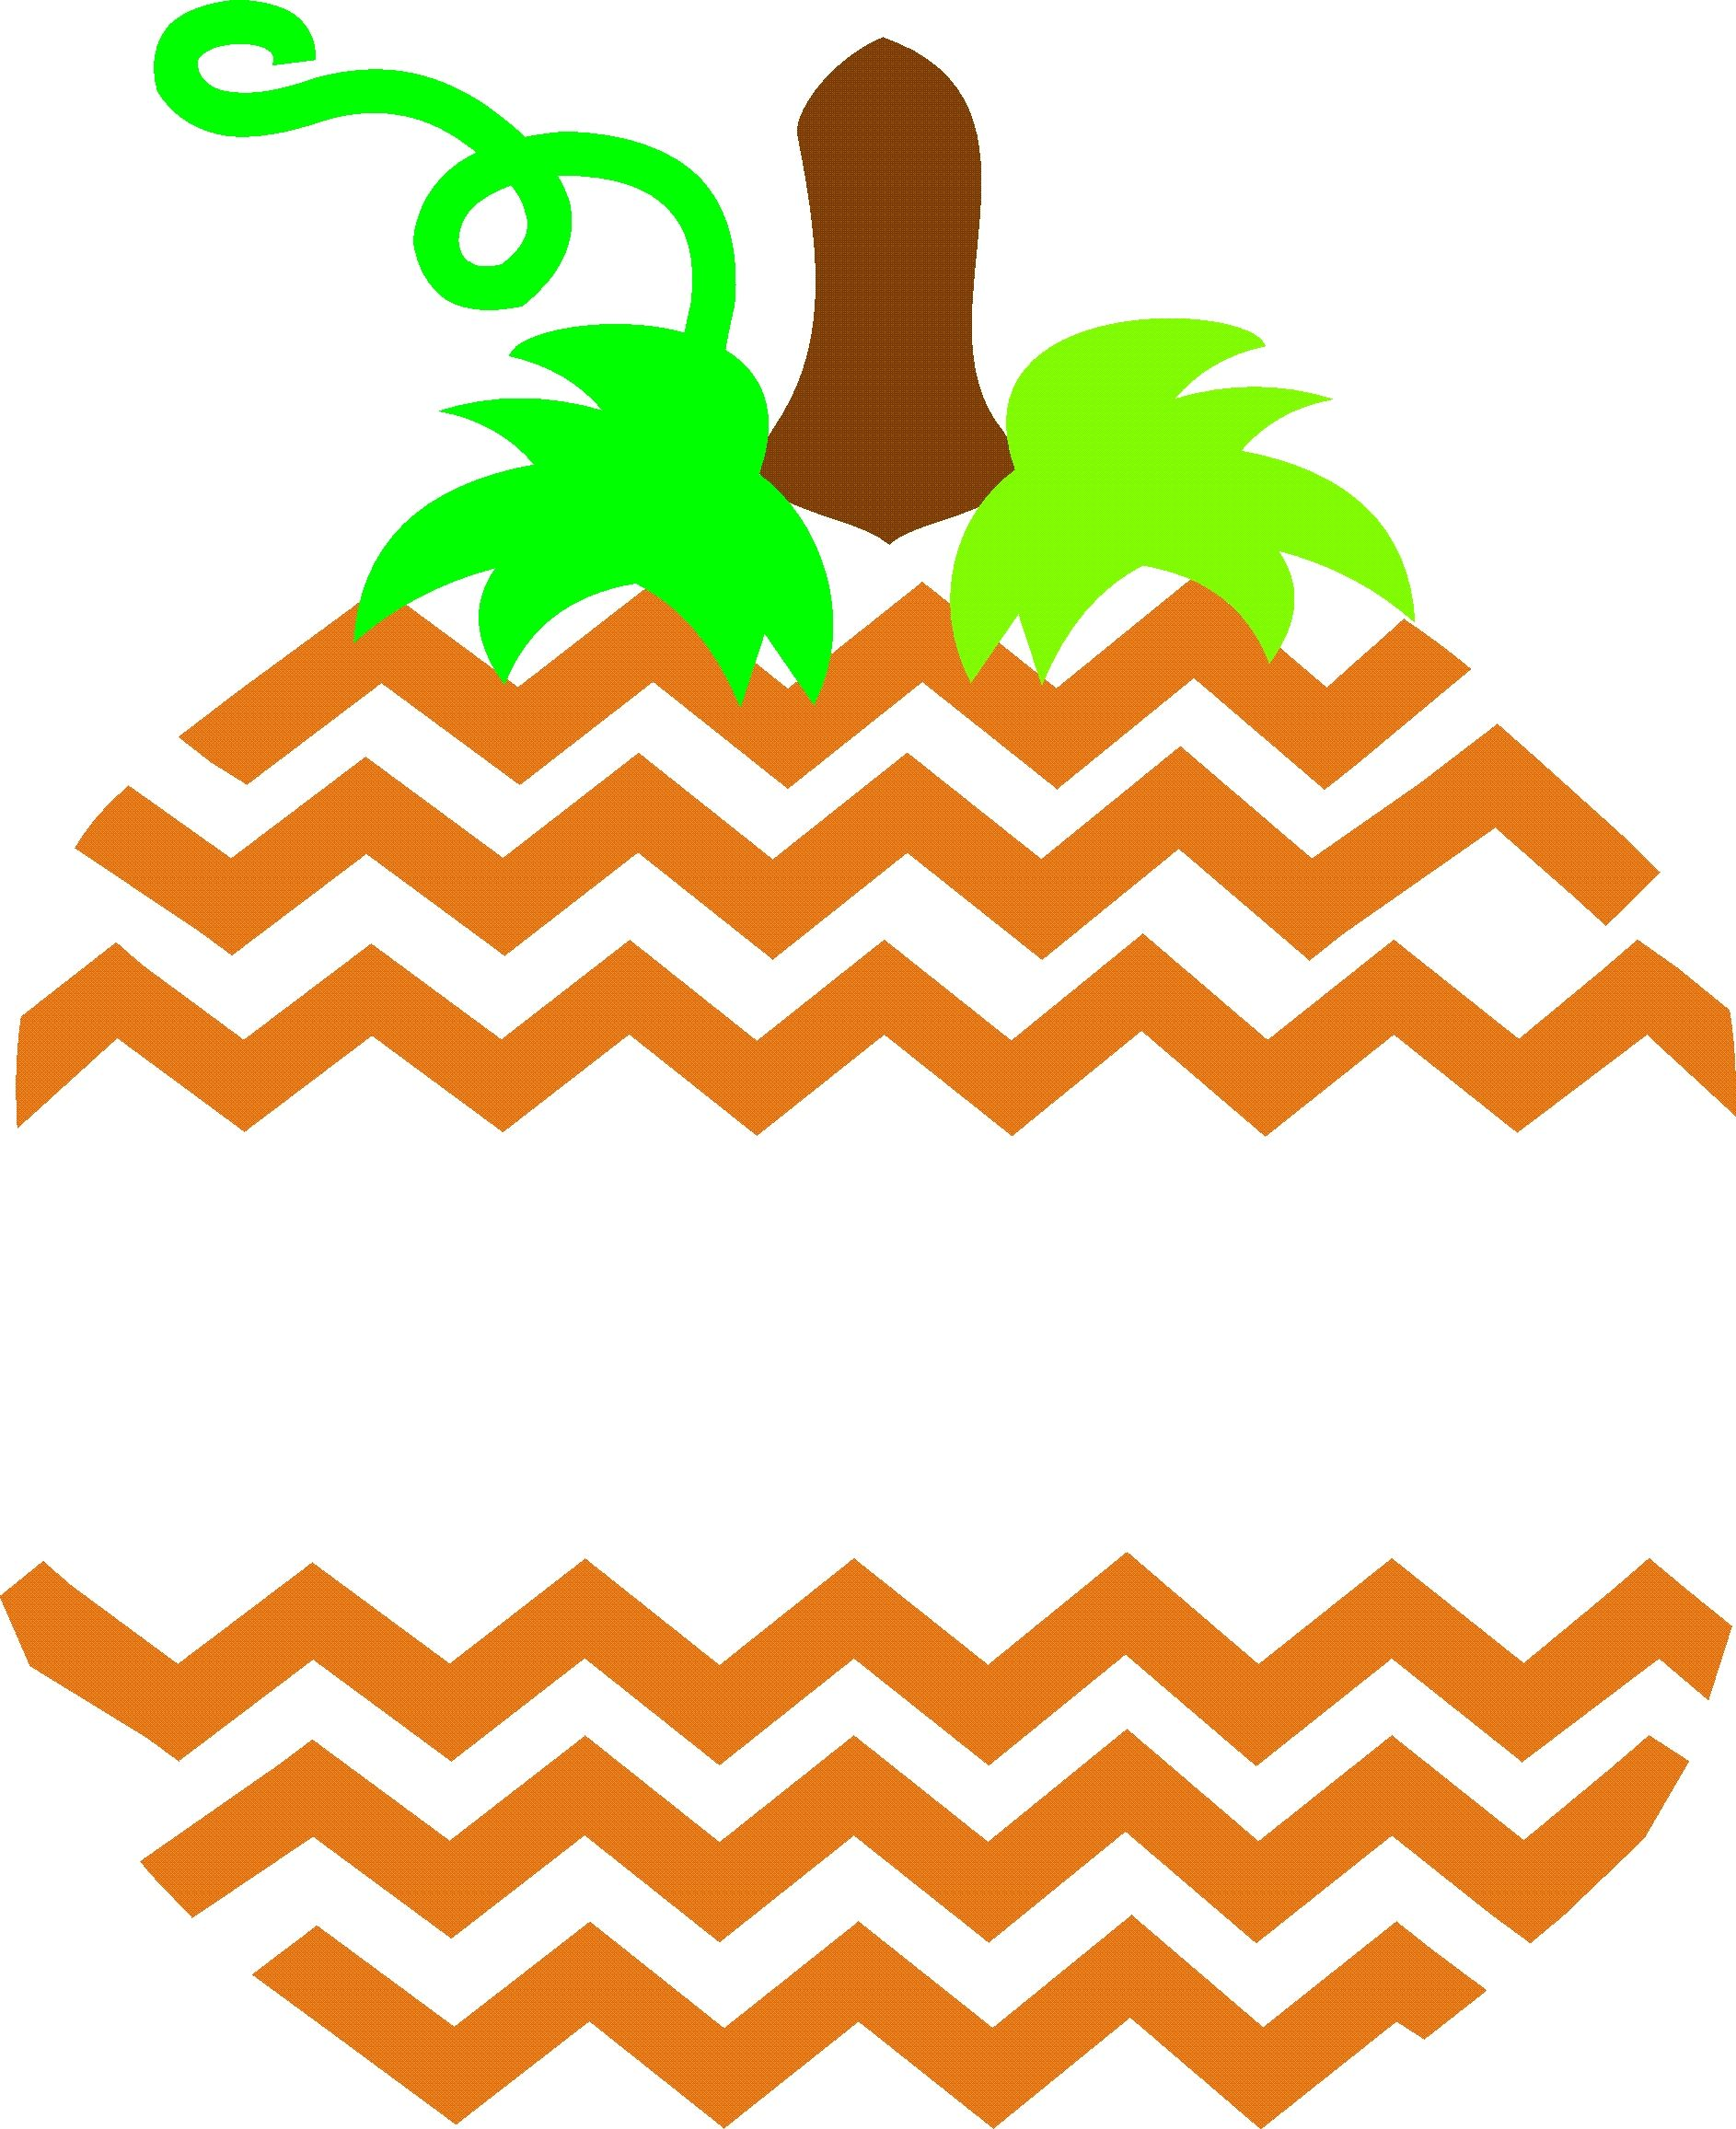 Chevron Striped Pumpkin SVG...The shape made me think it